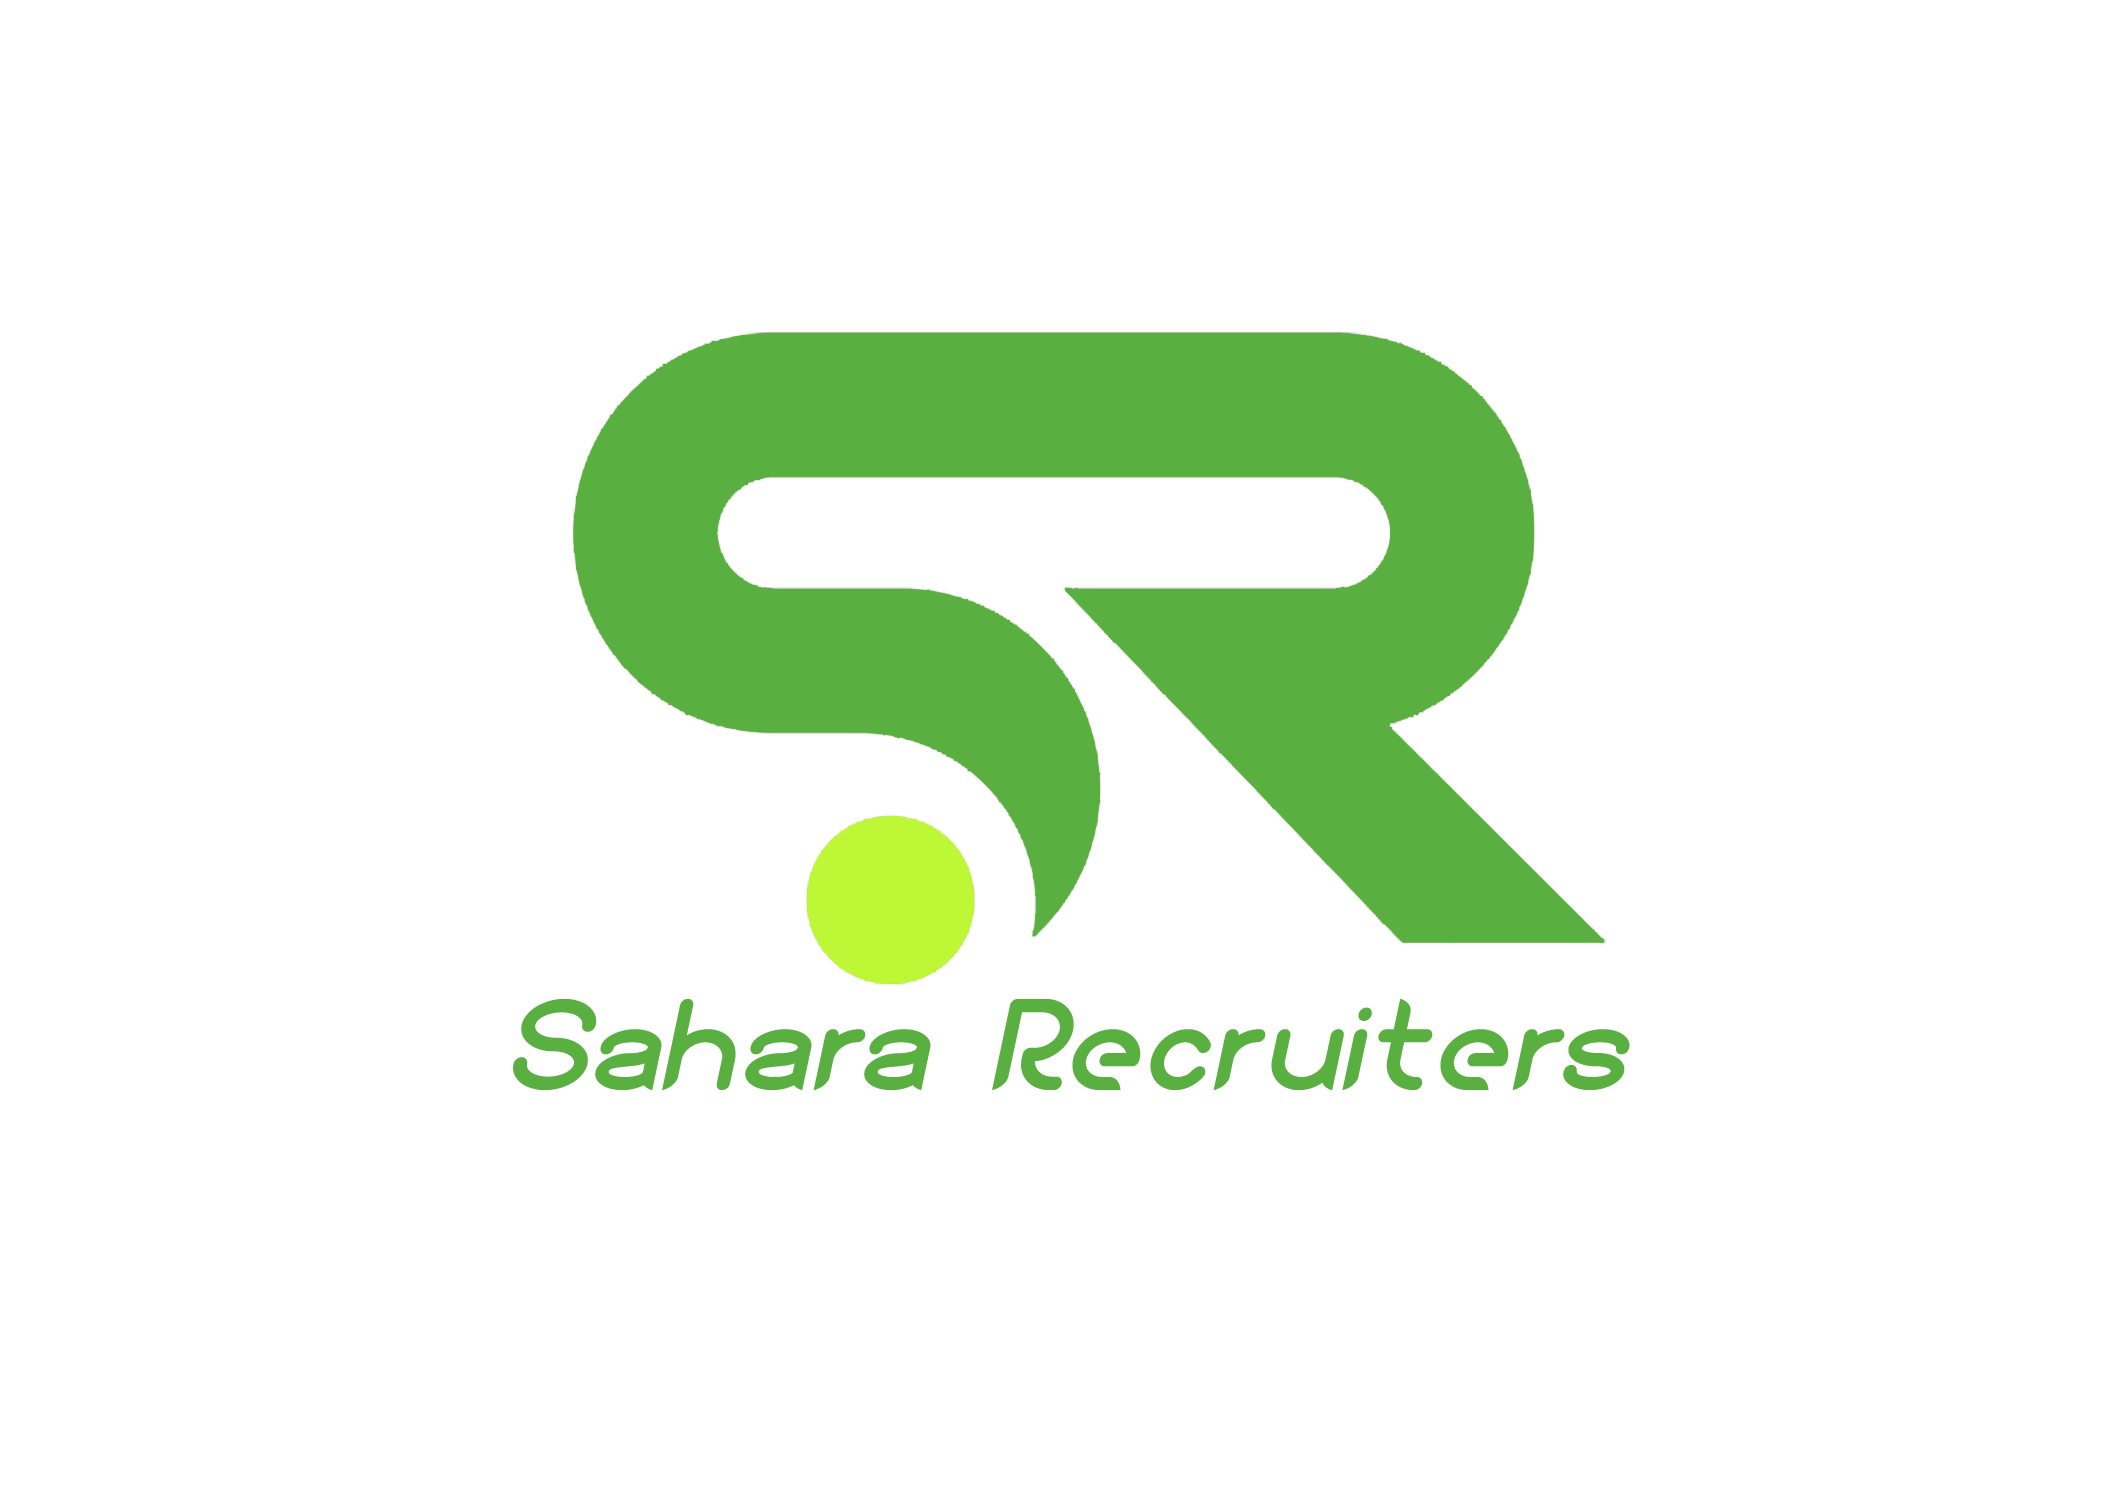 Sahara Recruiters Job Search and Recruitment